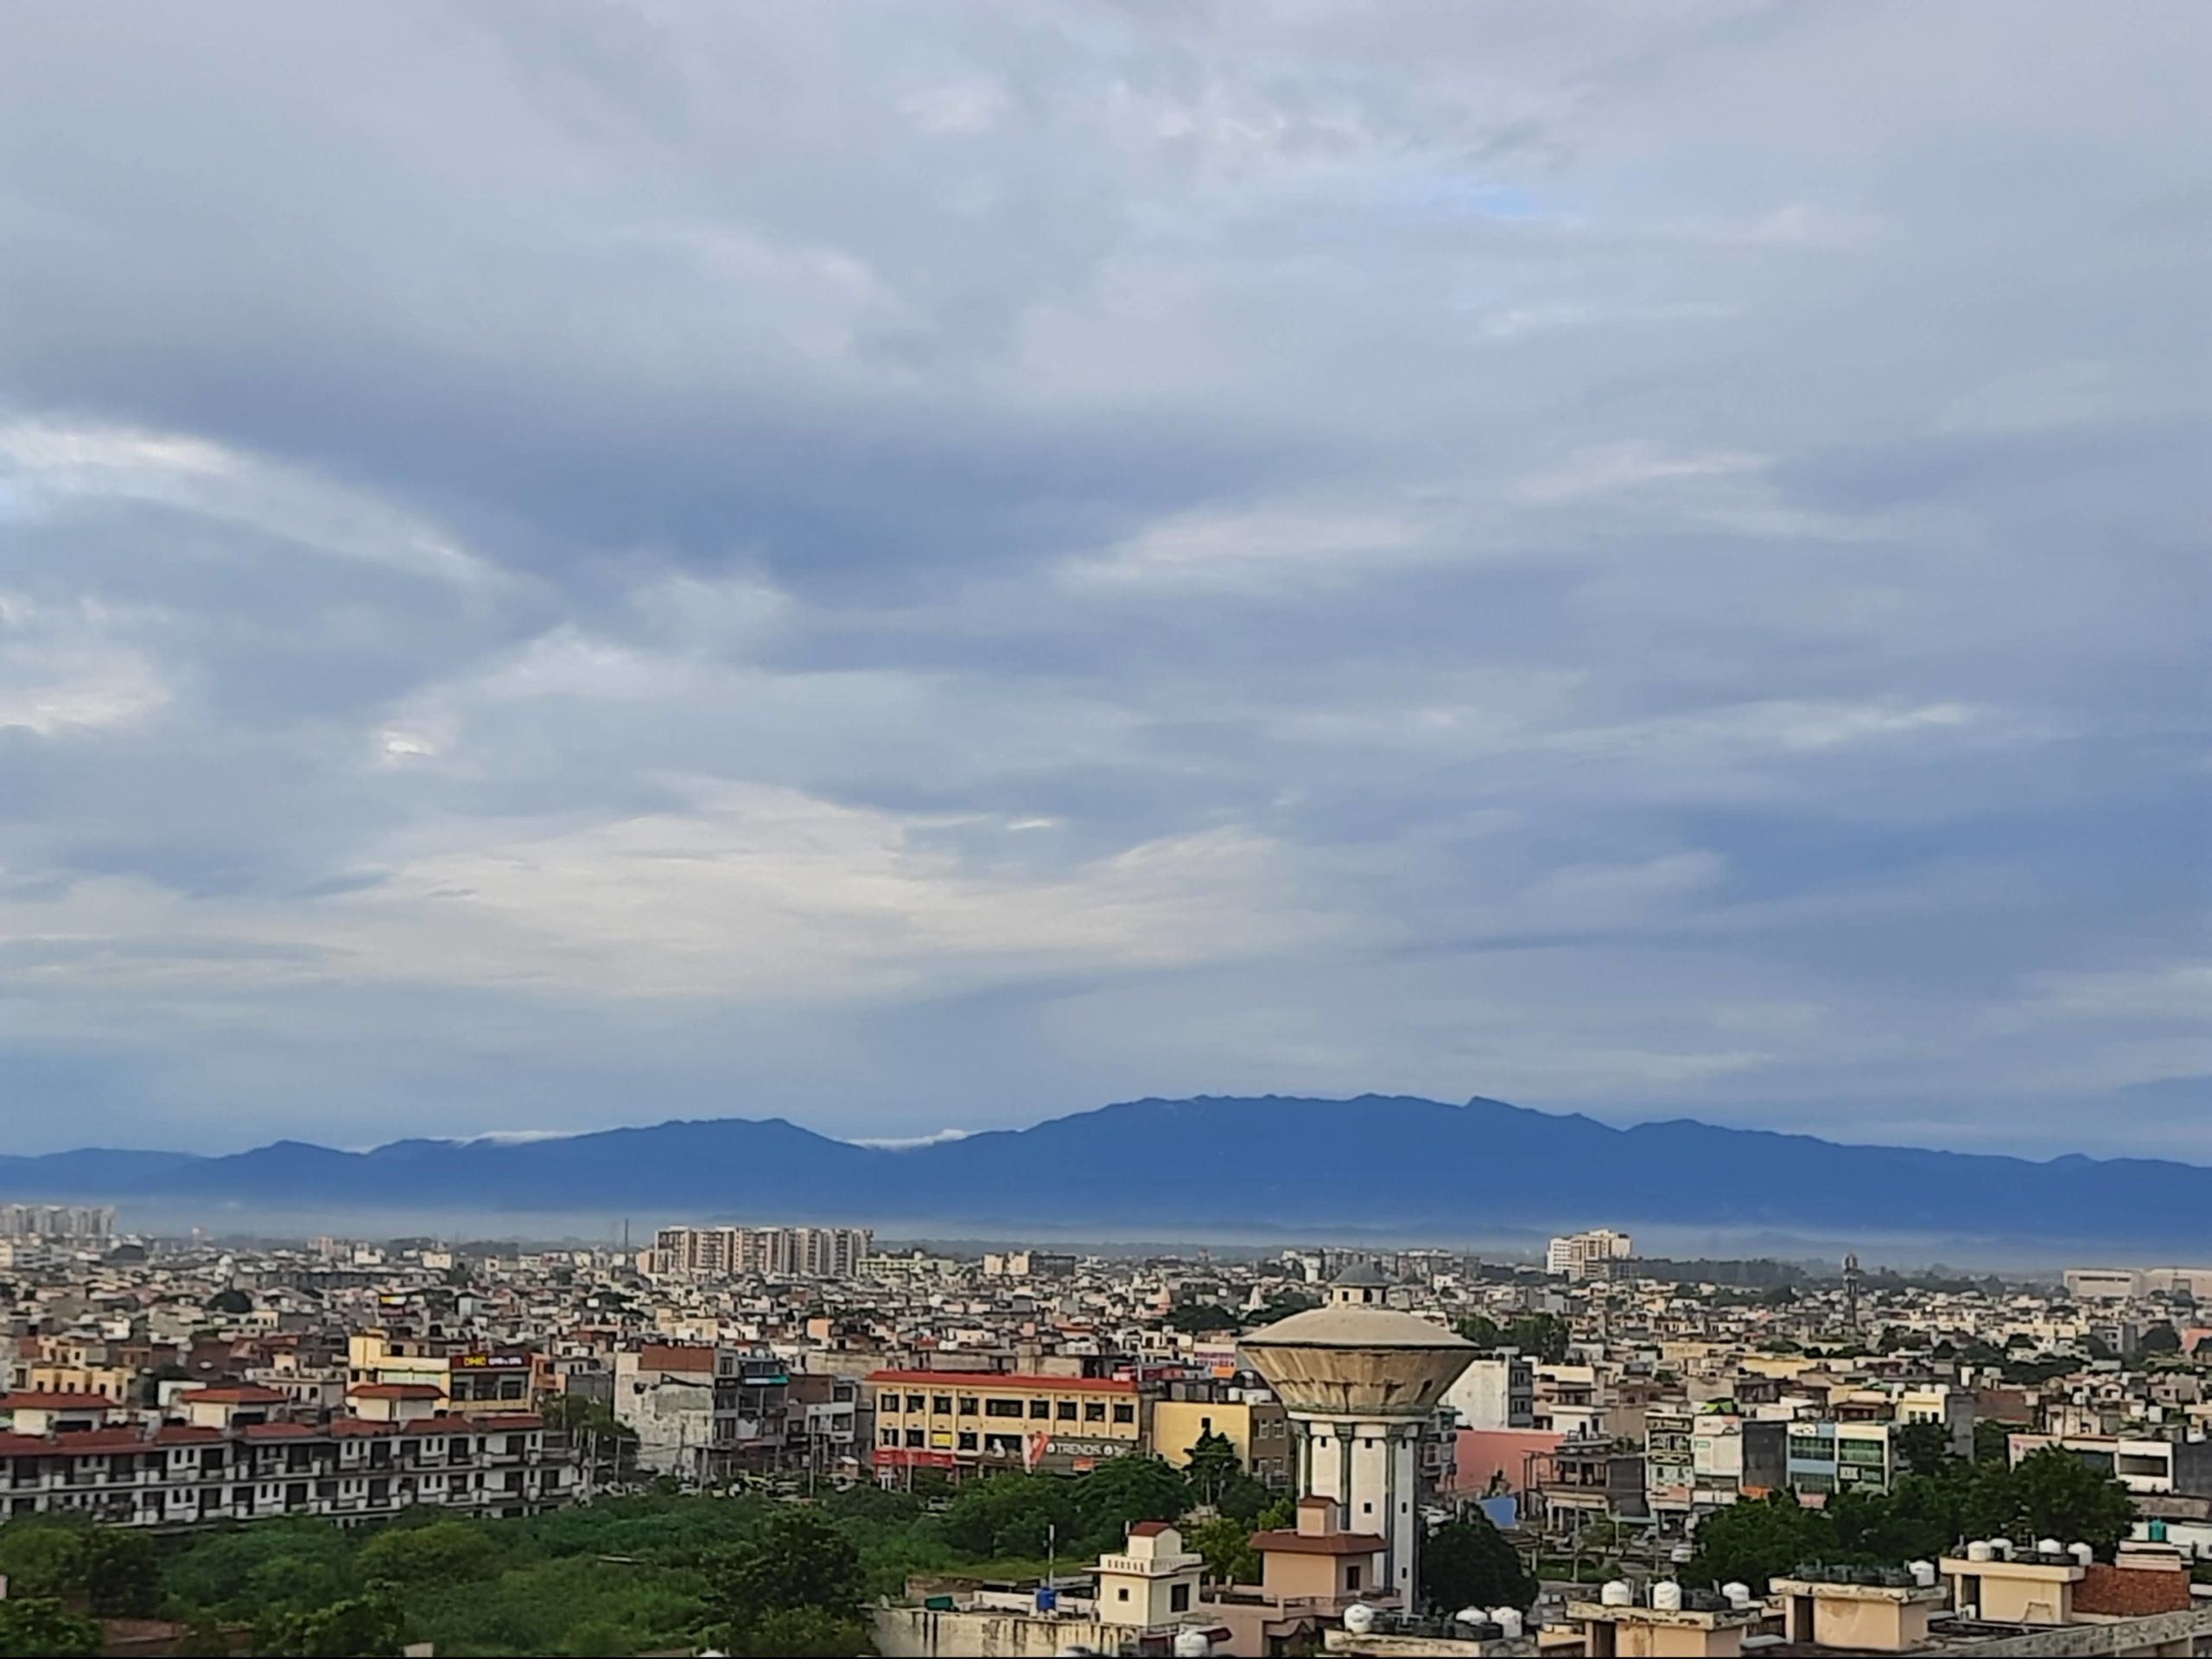 The tri-city skyline with the Shivaliks in the background